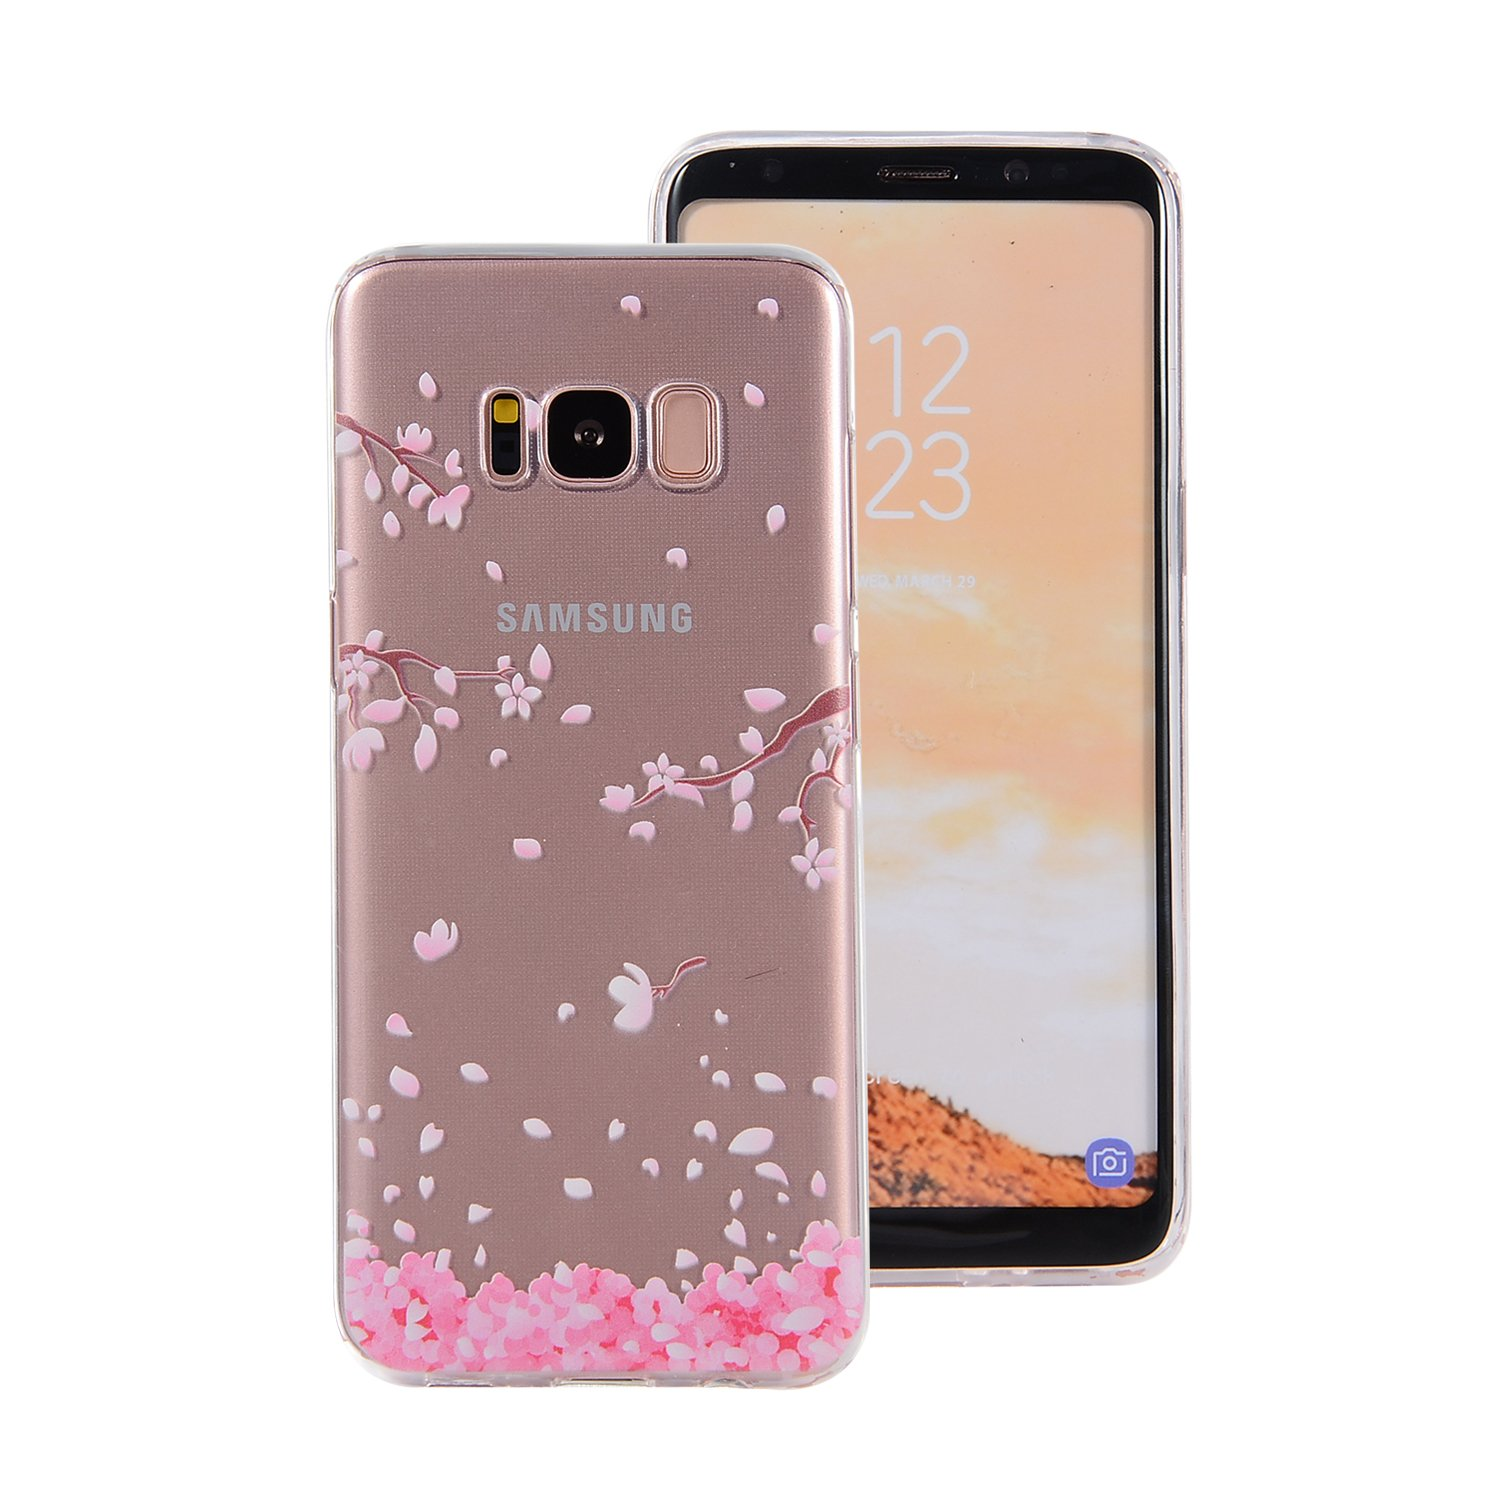 Protective Case Samsung Galaxy S8, Samsung Galaxy S8 Phone Case, Gostyle Ultra Slim Drawing Pattern Clear Soft Silicone TPU Rubber Shock Absorption Back Cover(Pink Cherry Blossoms)